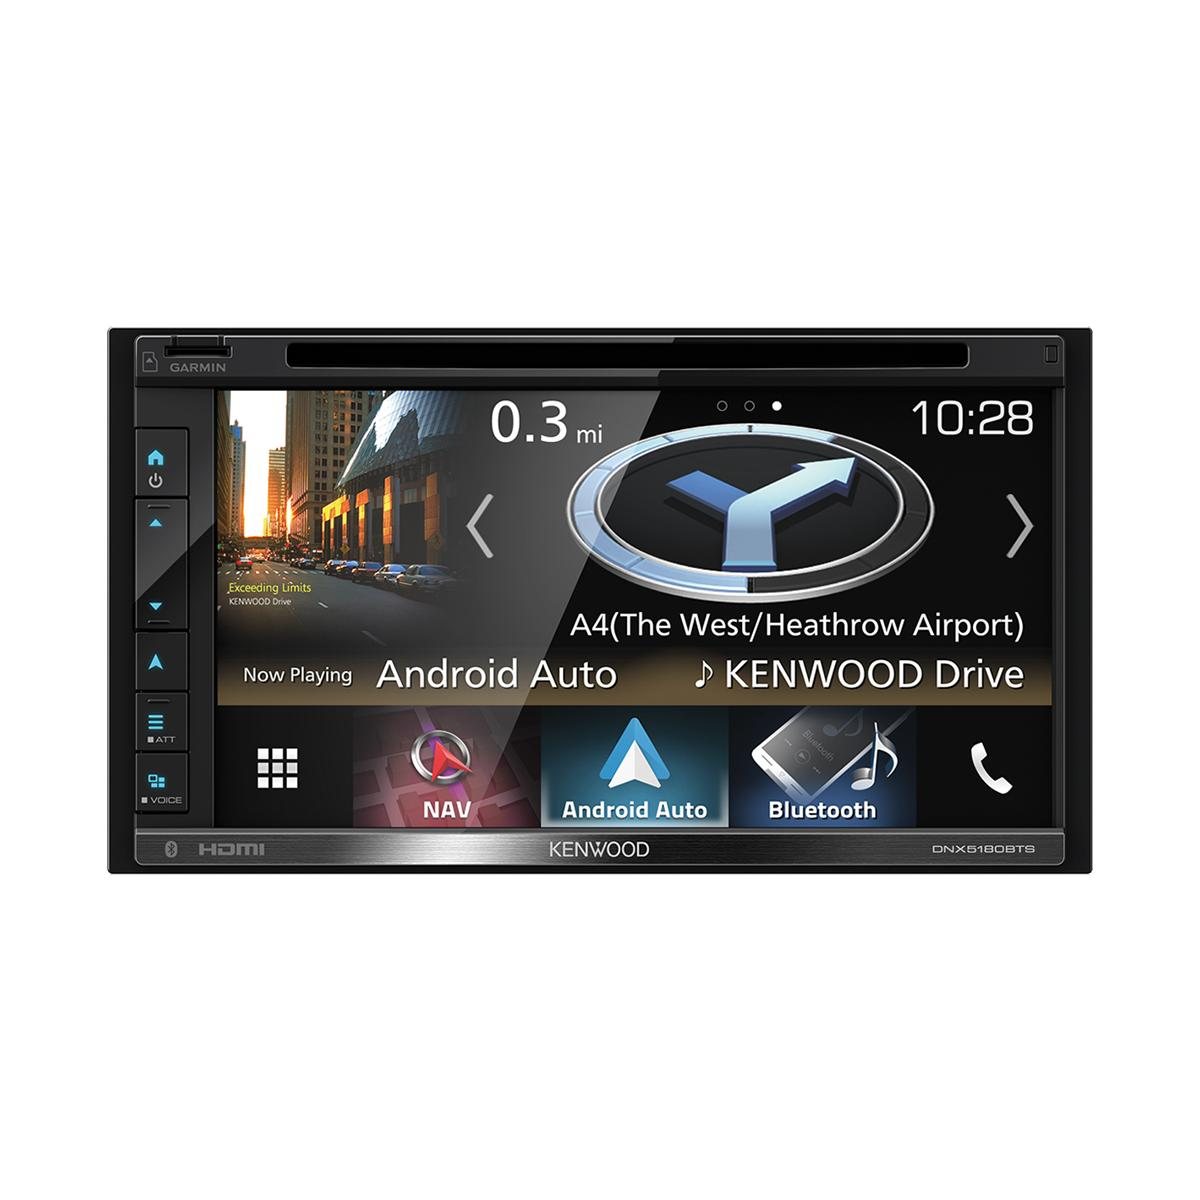 In Car Sat Nav Kenwood Car Audio DNX-5180BTS